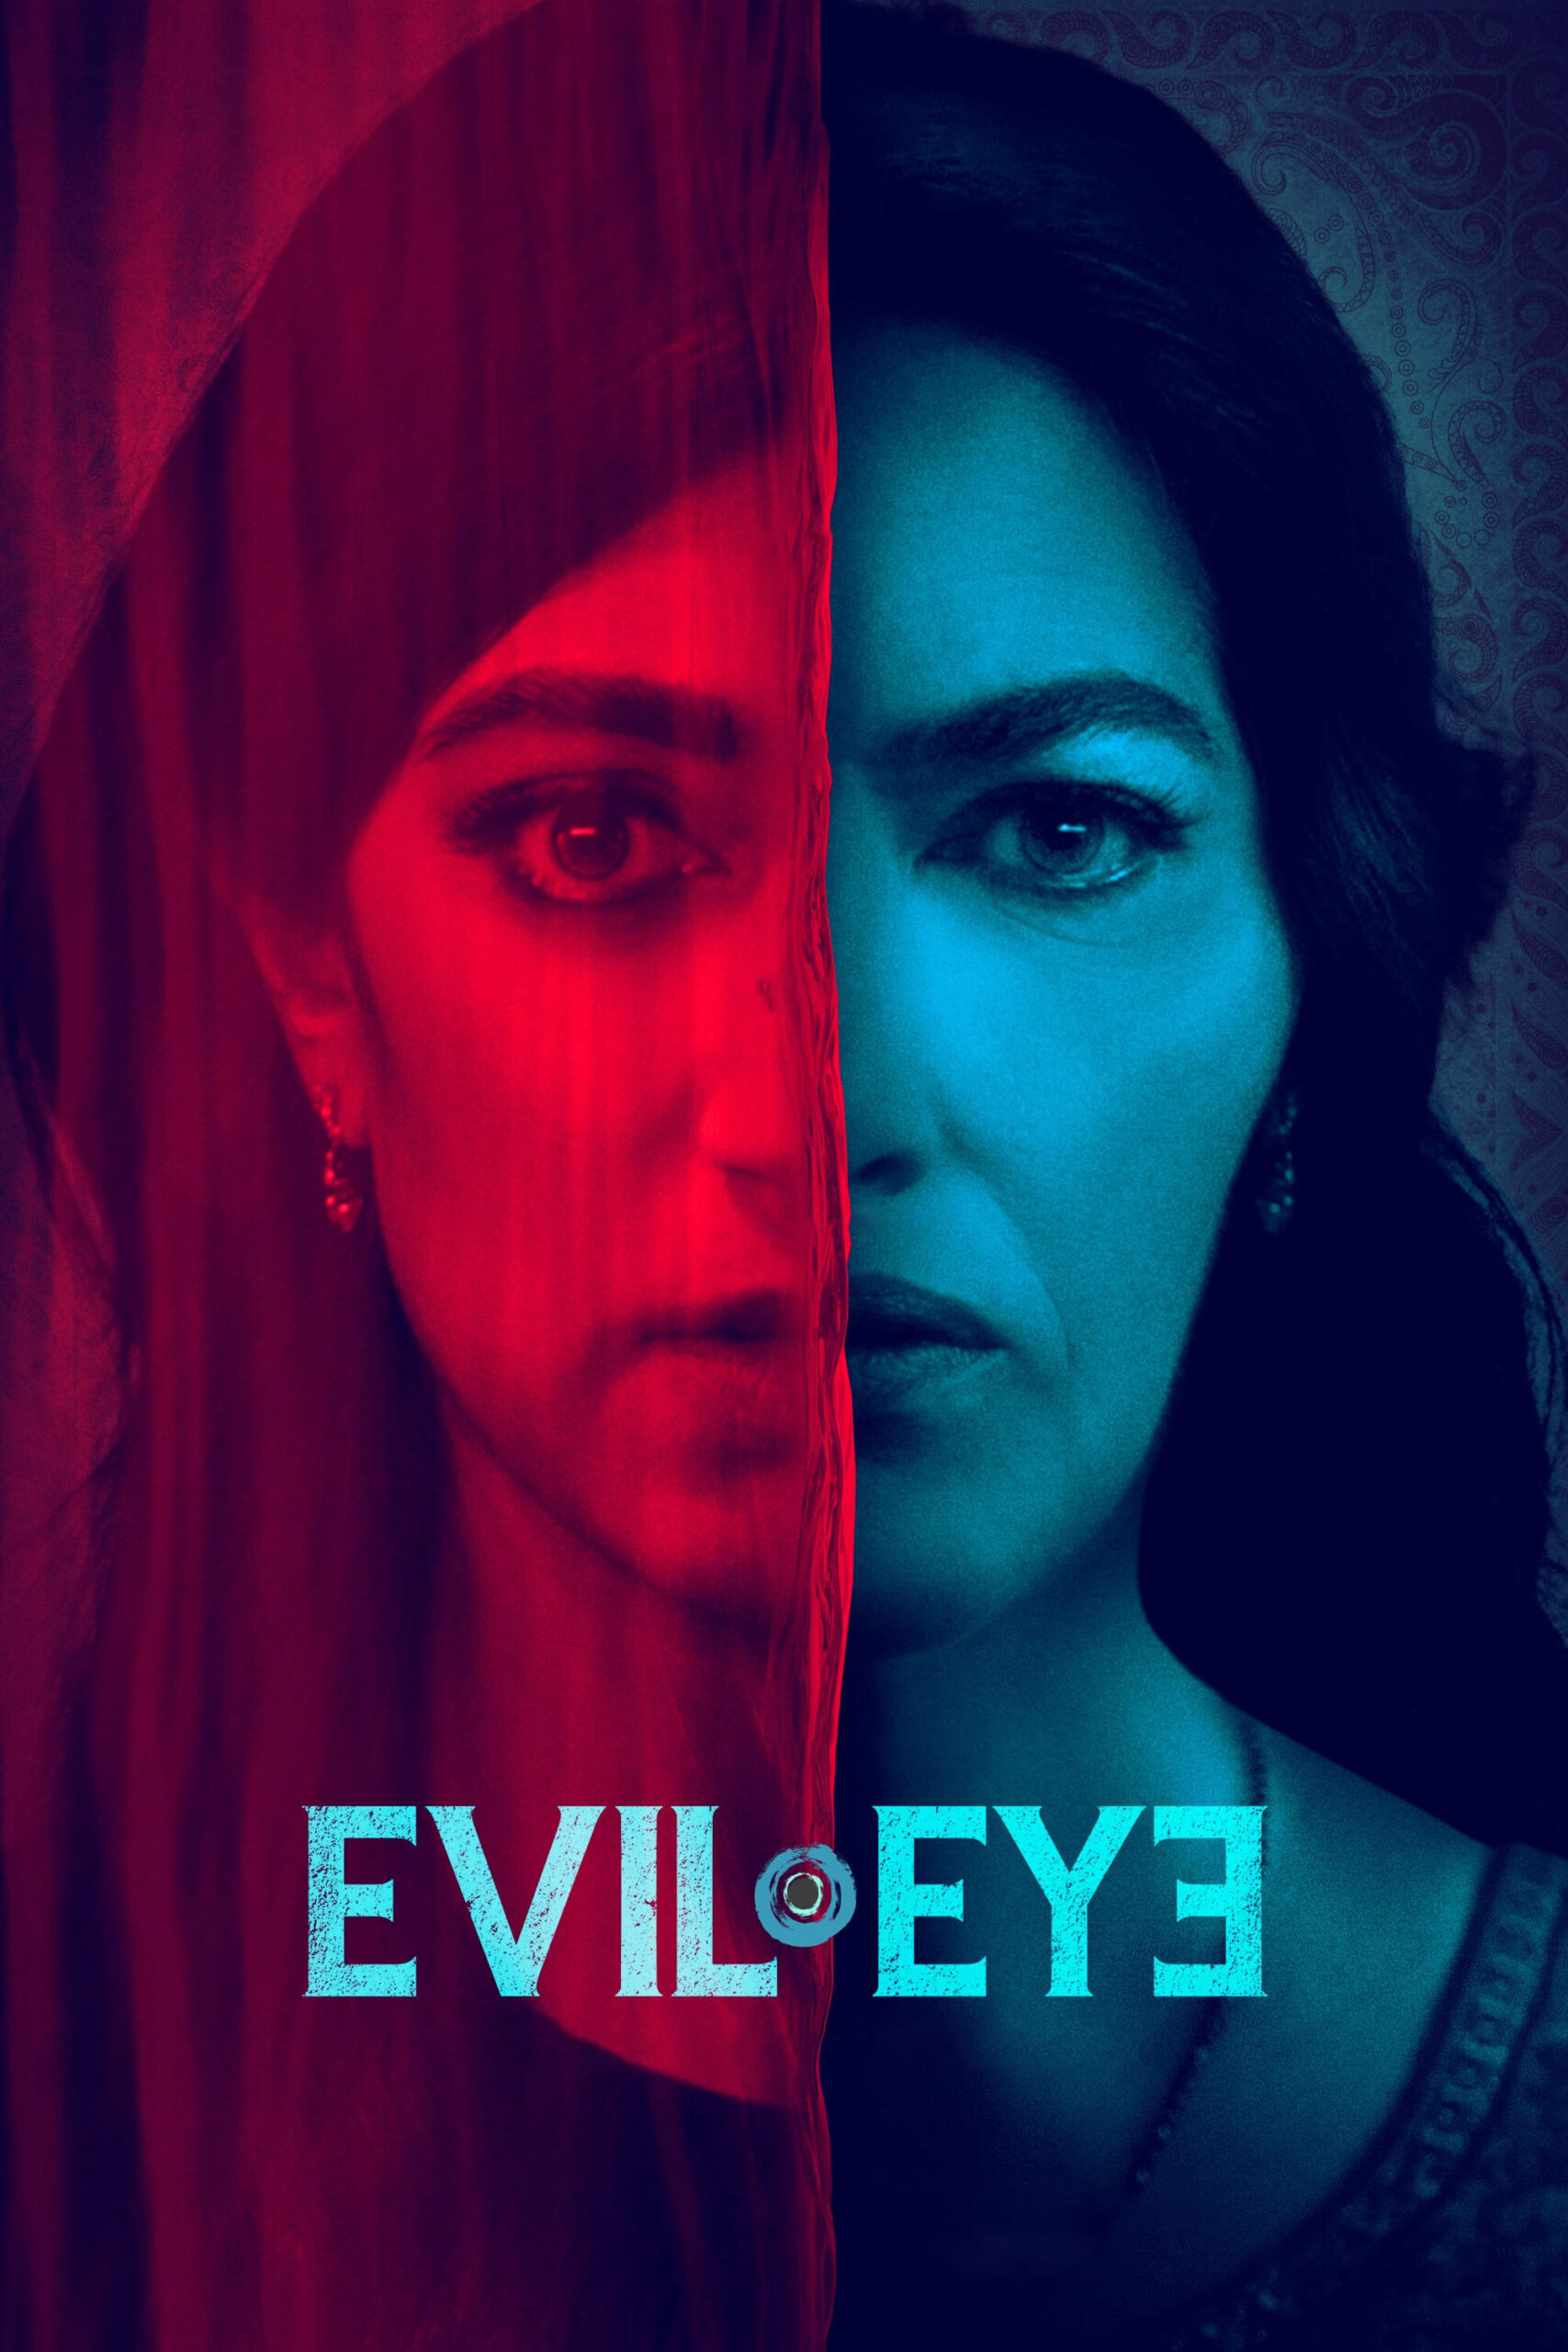 Evil Eye Movie Streaming Online Watch on Amazon